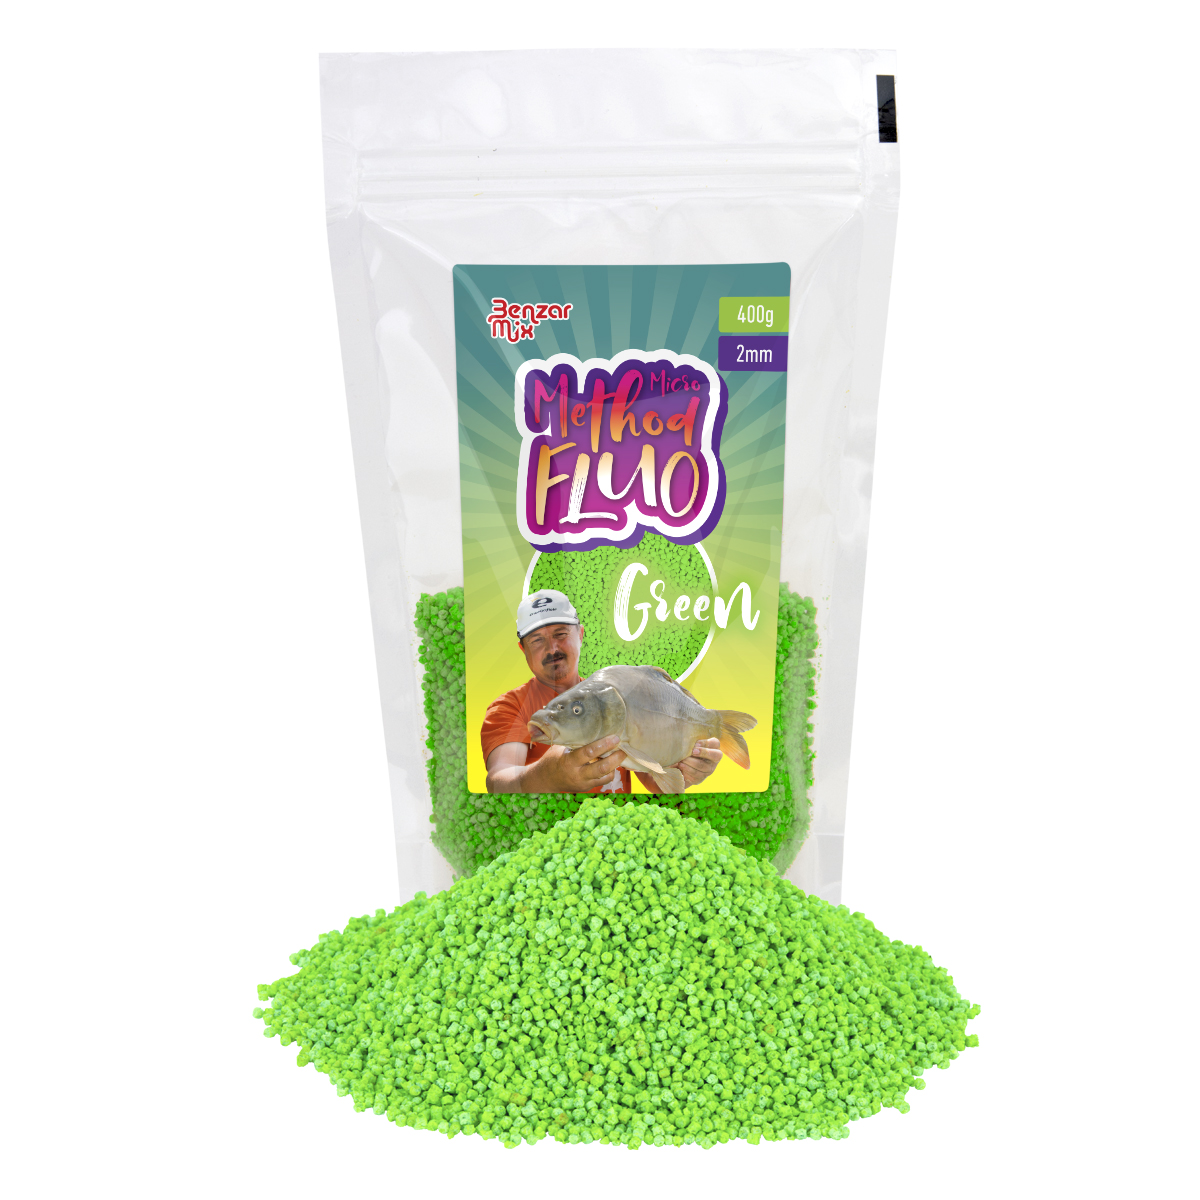 BENZAR MIX MICRO METHOD FLUO PELLET ZOLD 2MM 400GR